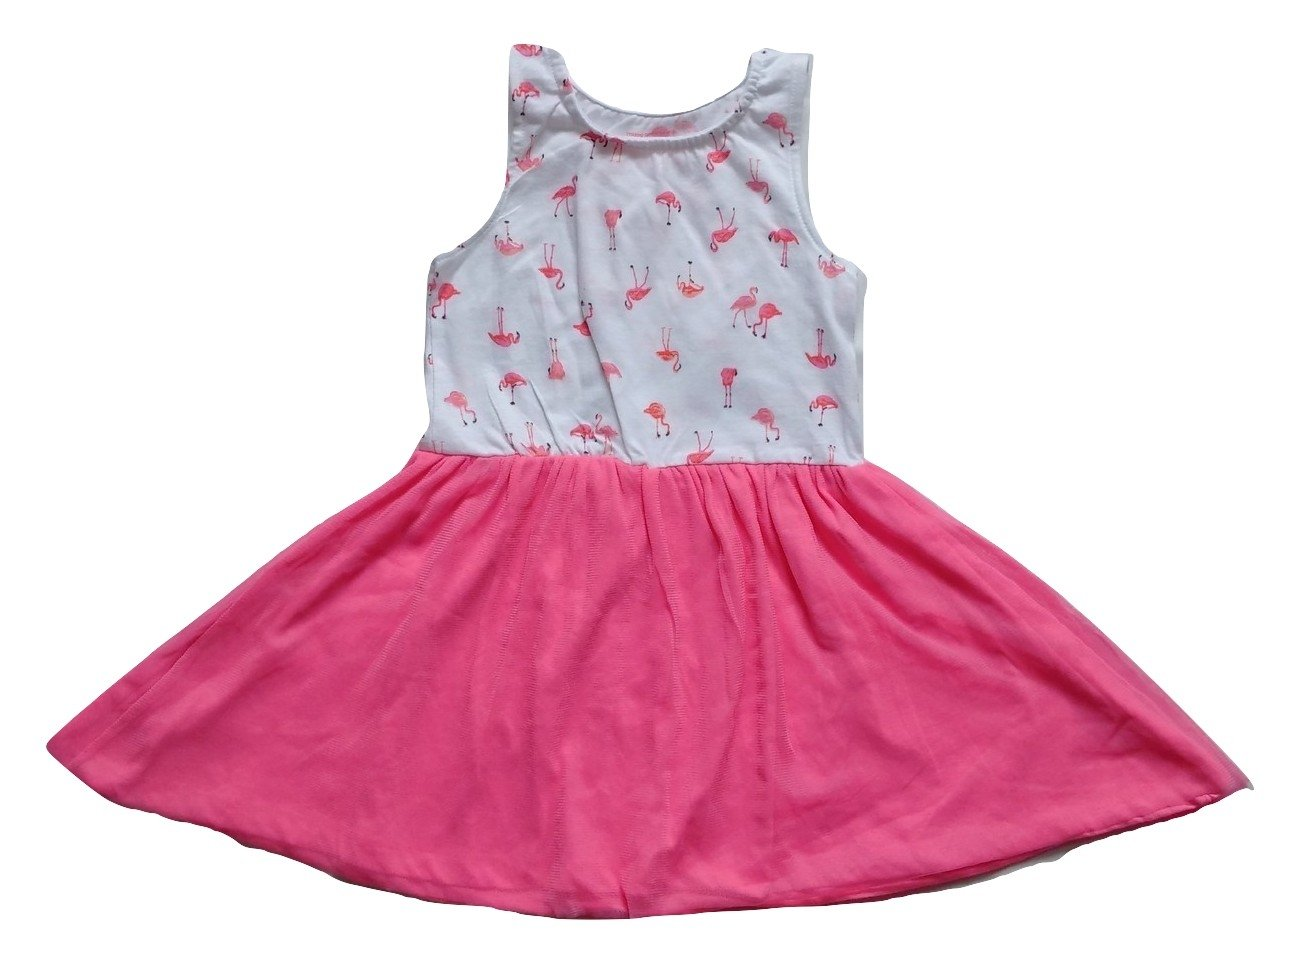 Young Dimension Flamingo Design Baby Girls Dress - Stockpoint Apparel Outlet